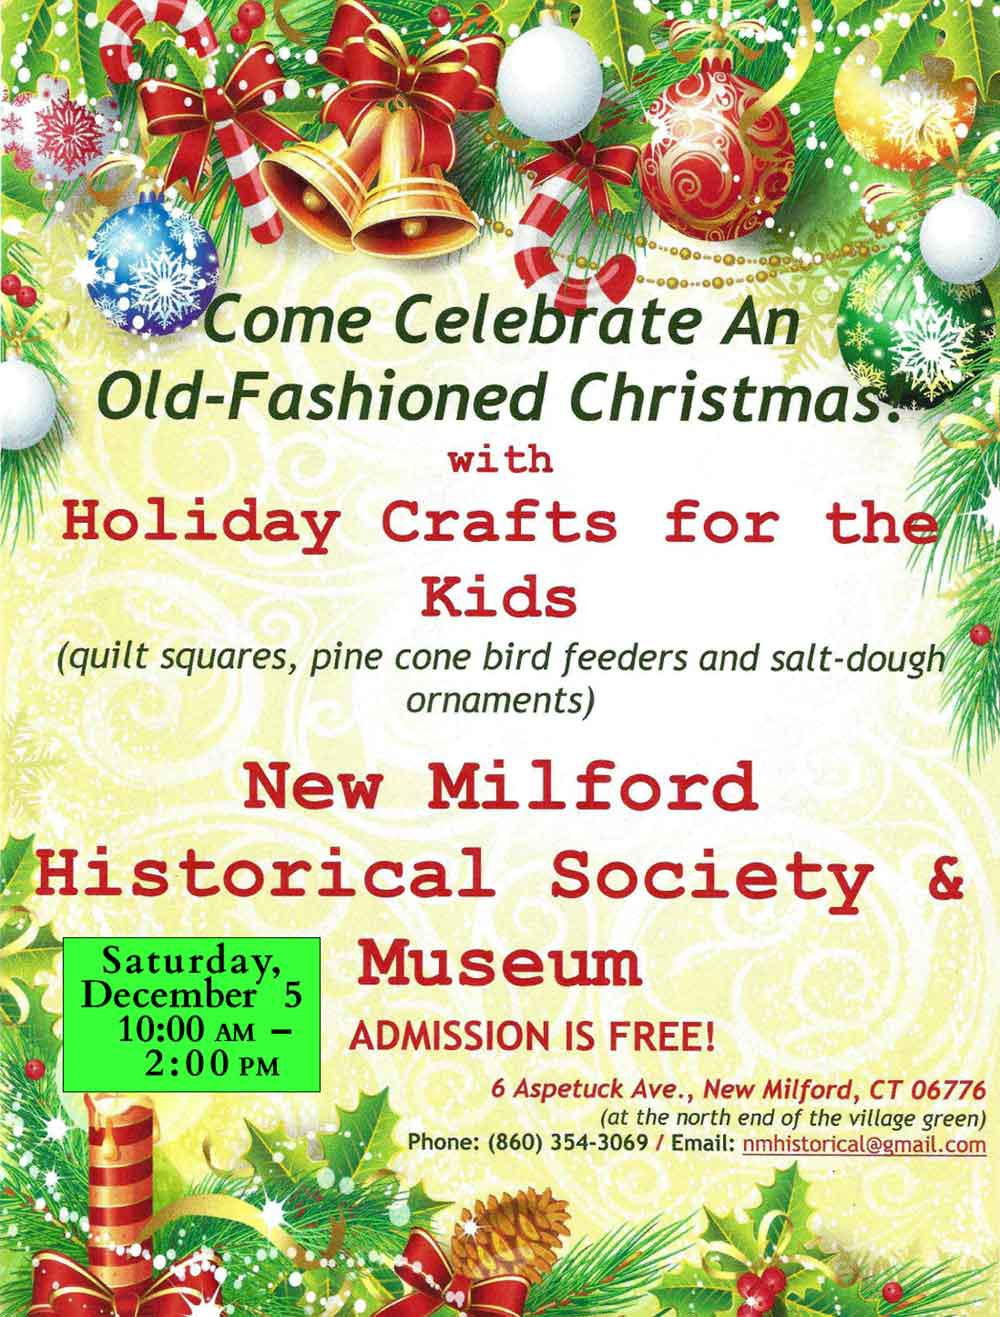 Saturday, December 5th   (10:00 AM to 2:00 PM)   Old-Fashioned Christmas Crafts,  Card-Making an